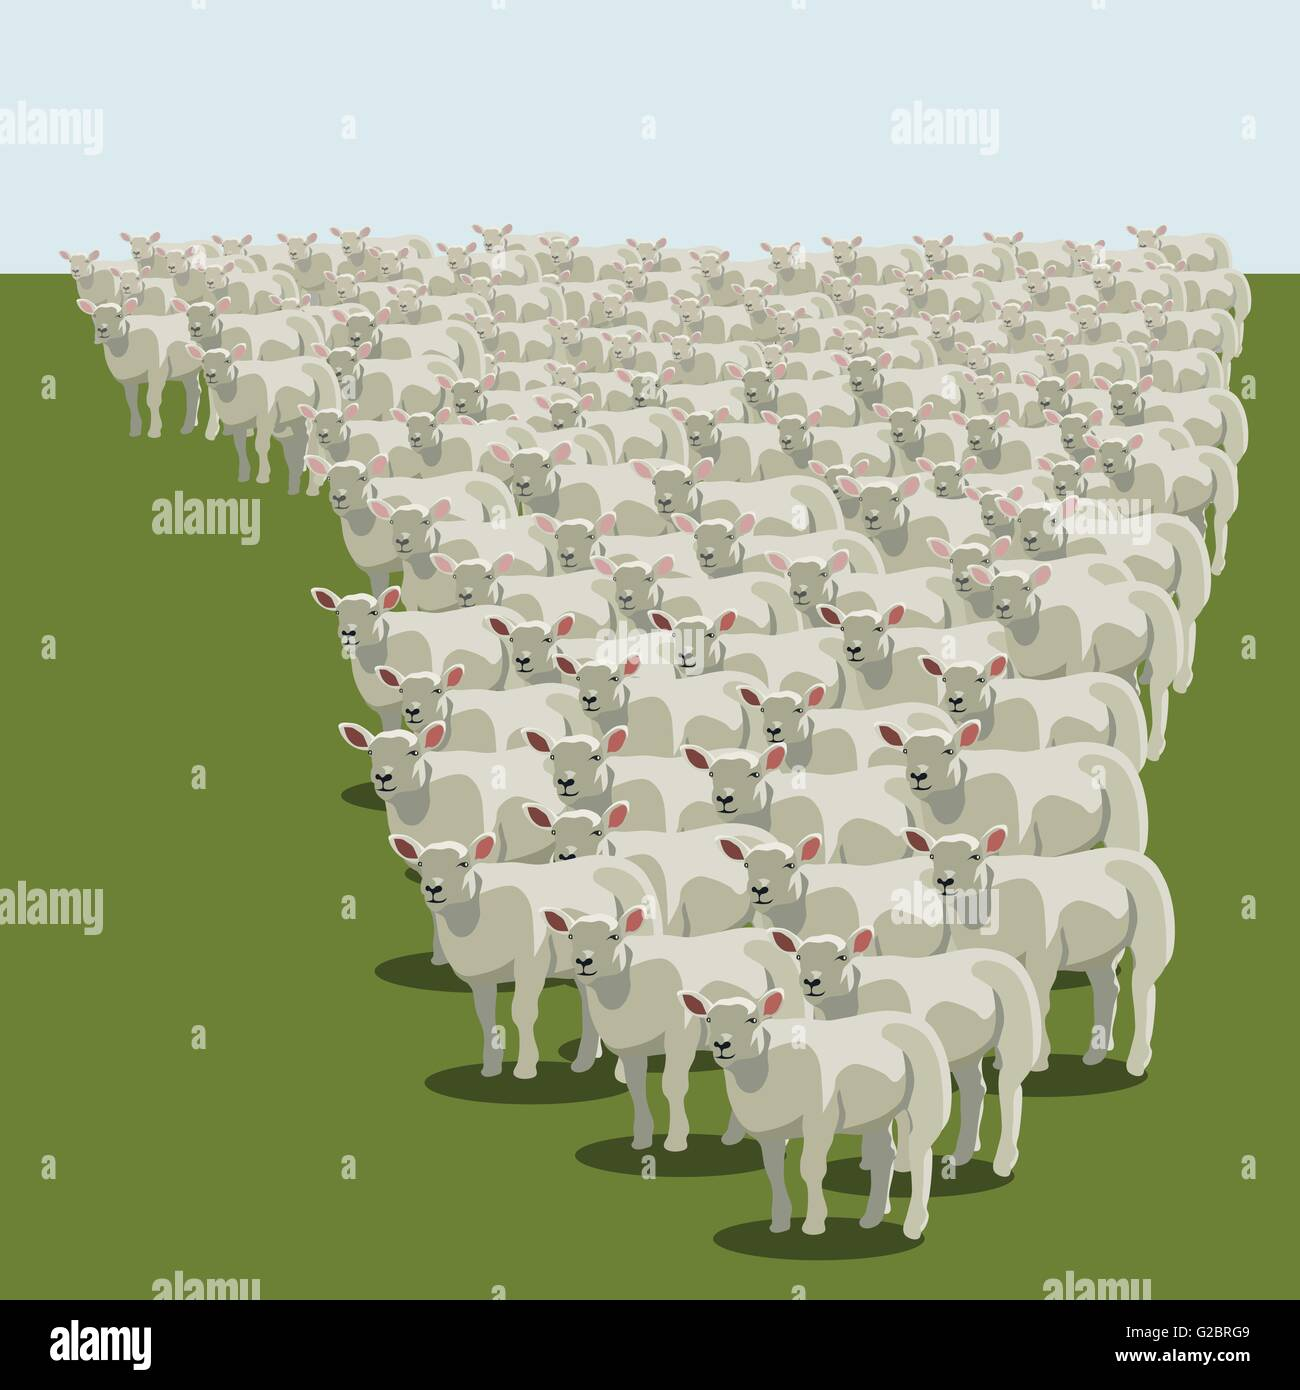 Animal sheep herd queuing, keeping together, vector - Stock Vector